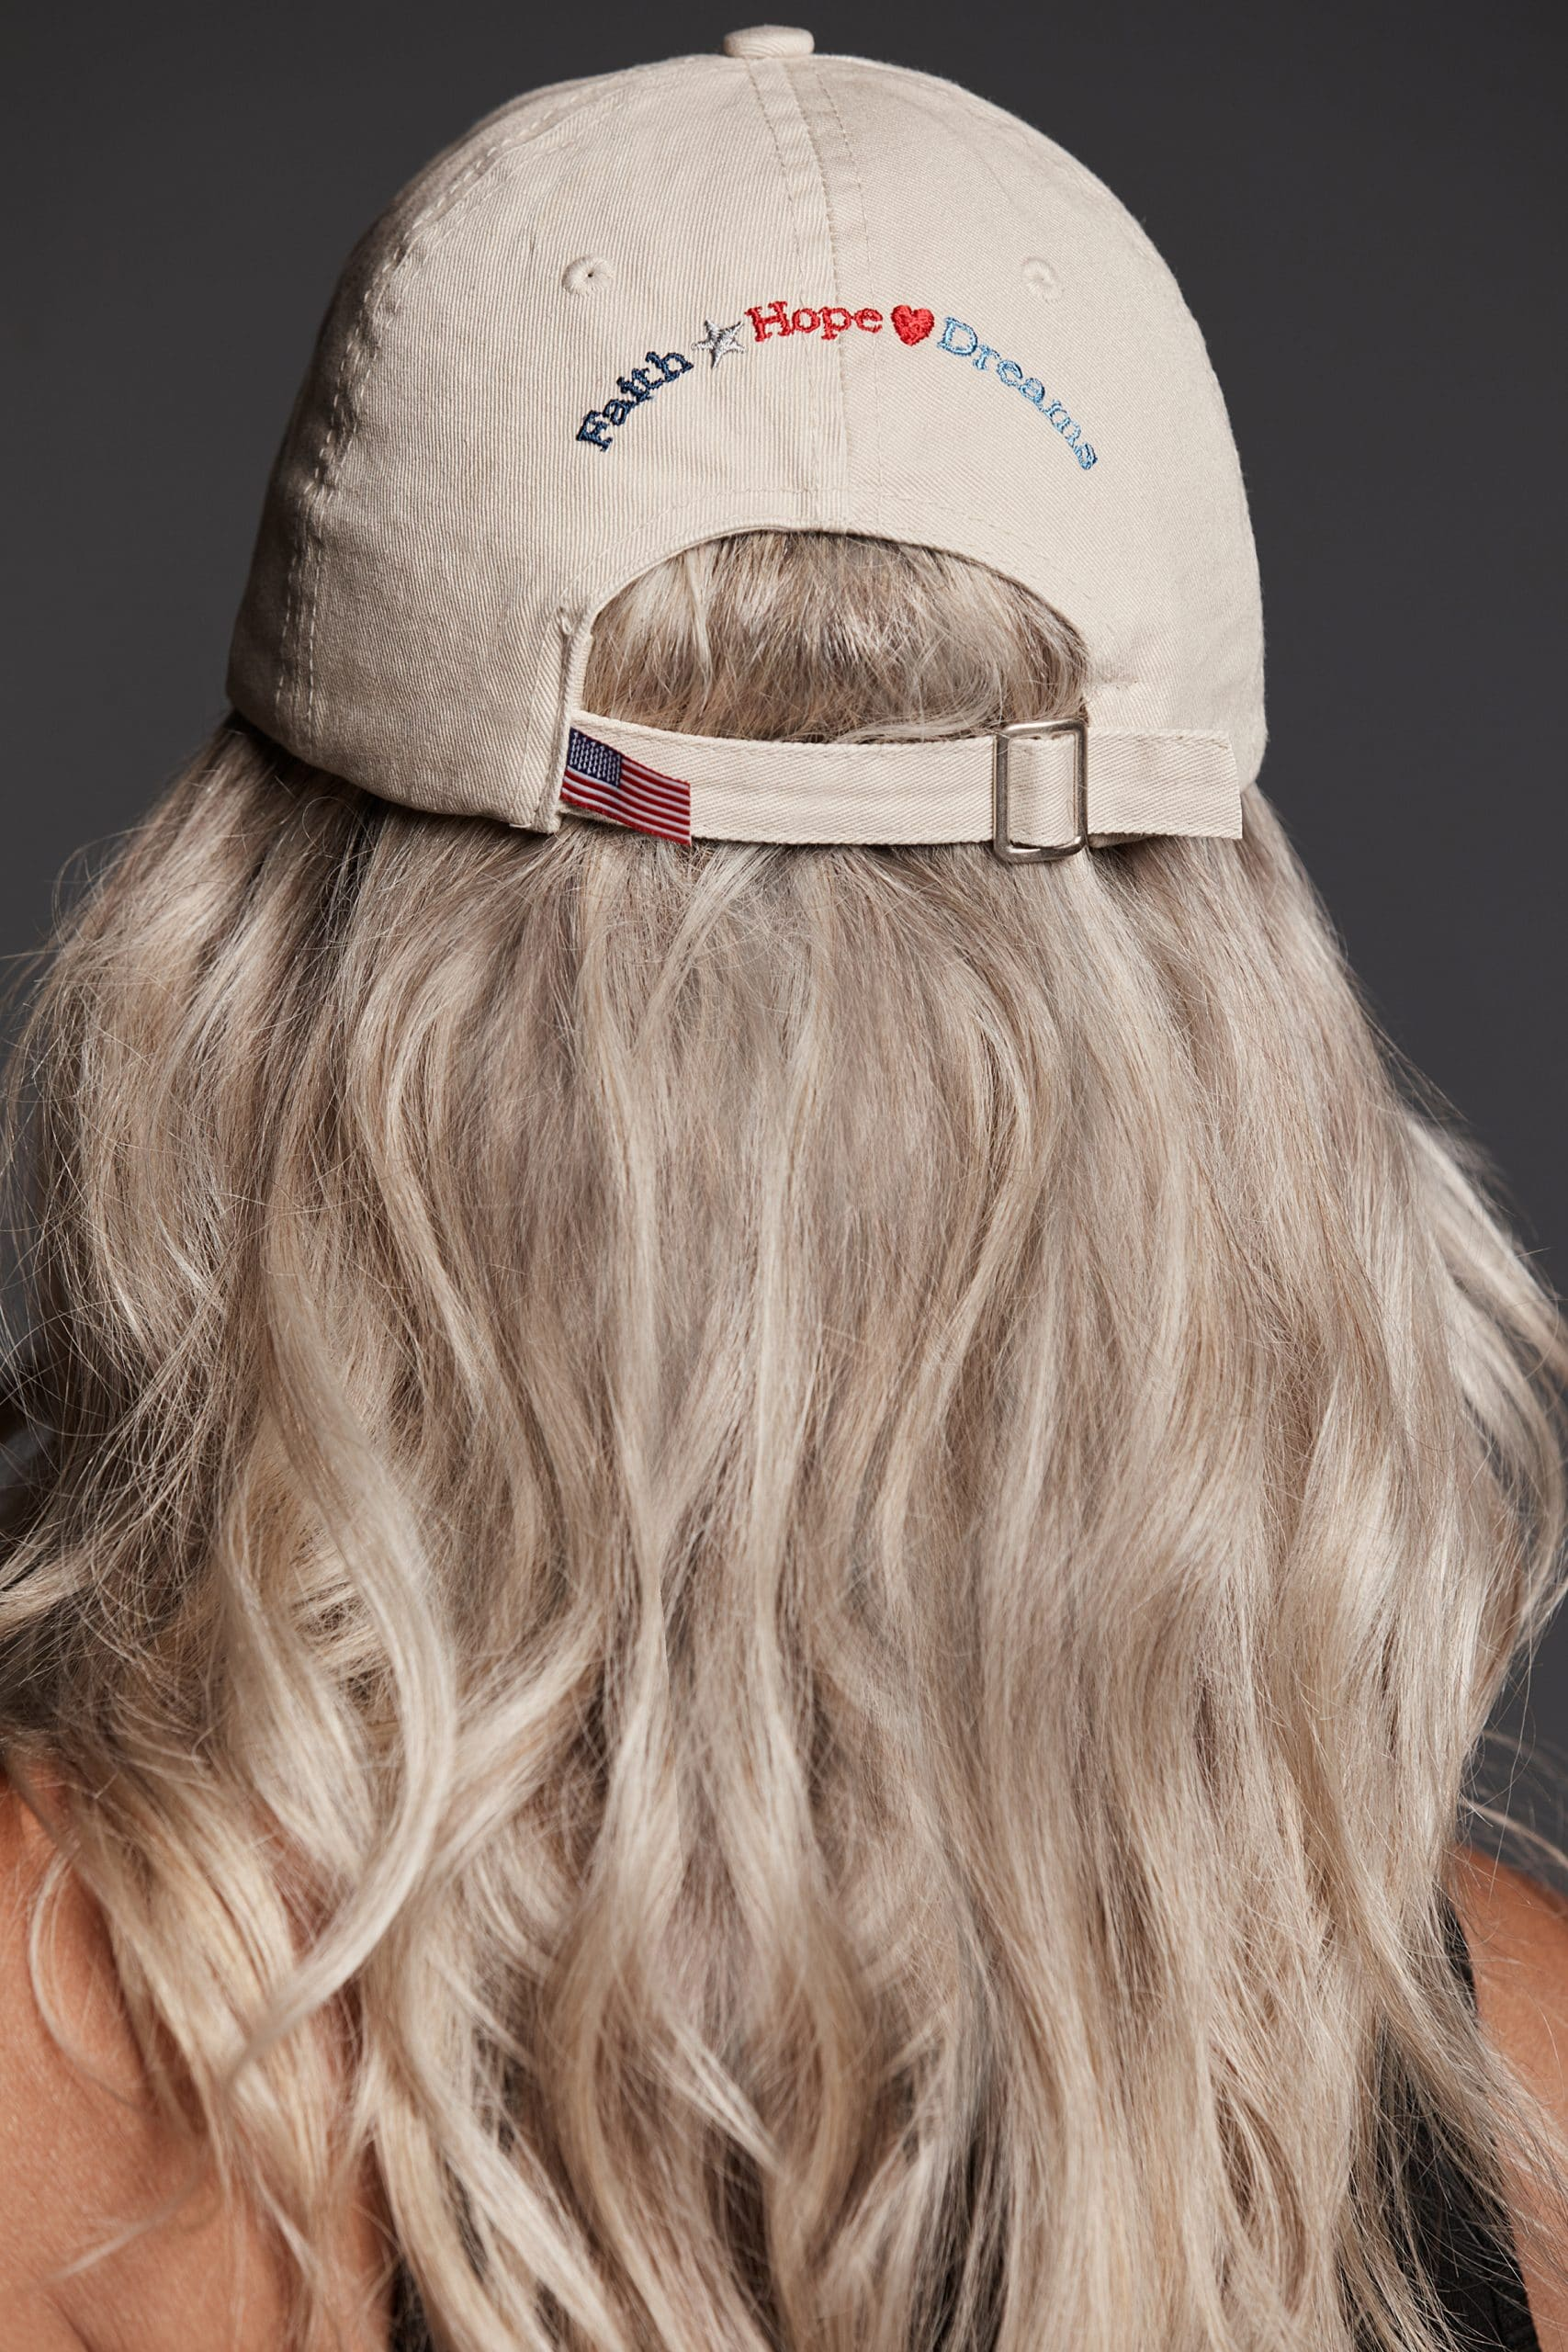 Star Heart Faith Hope Dreams Embroidered Baseball Cap